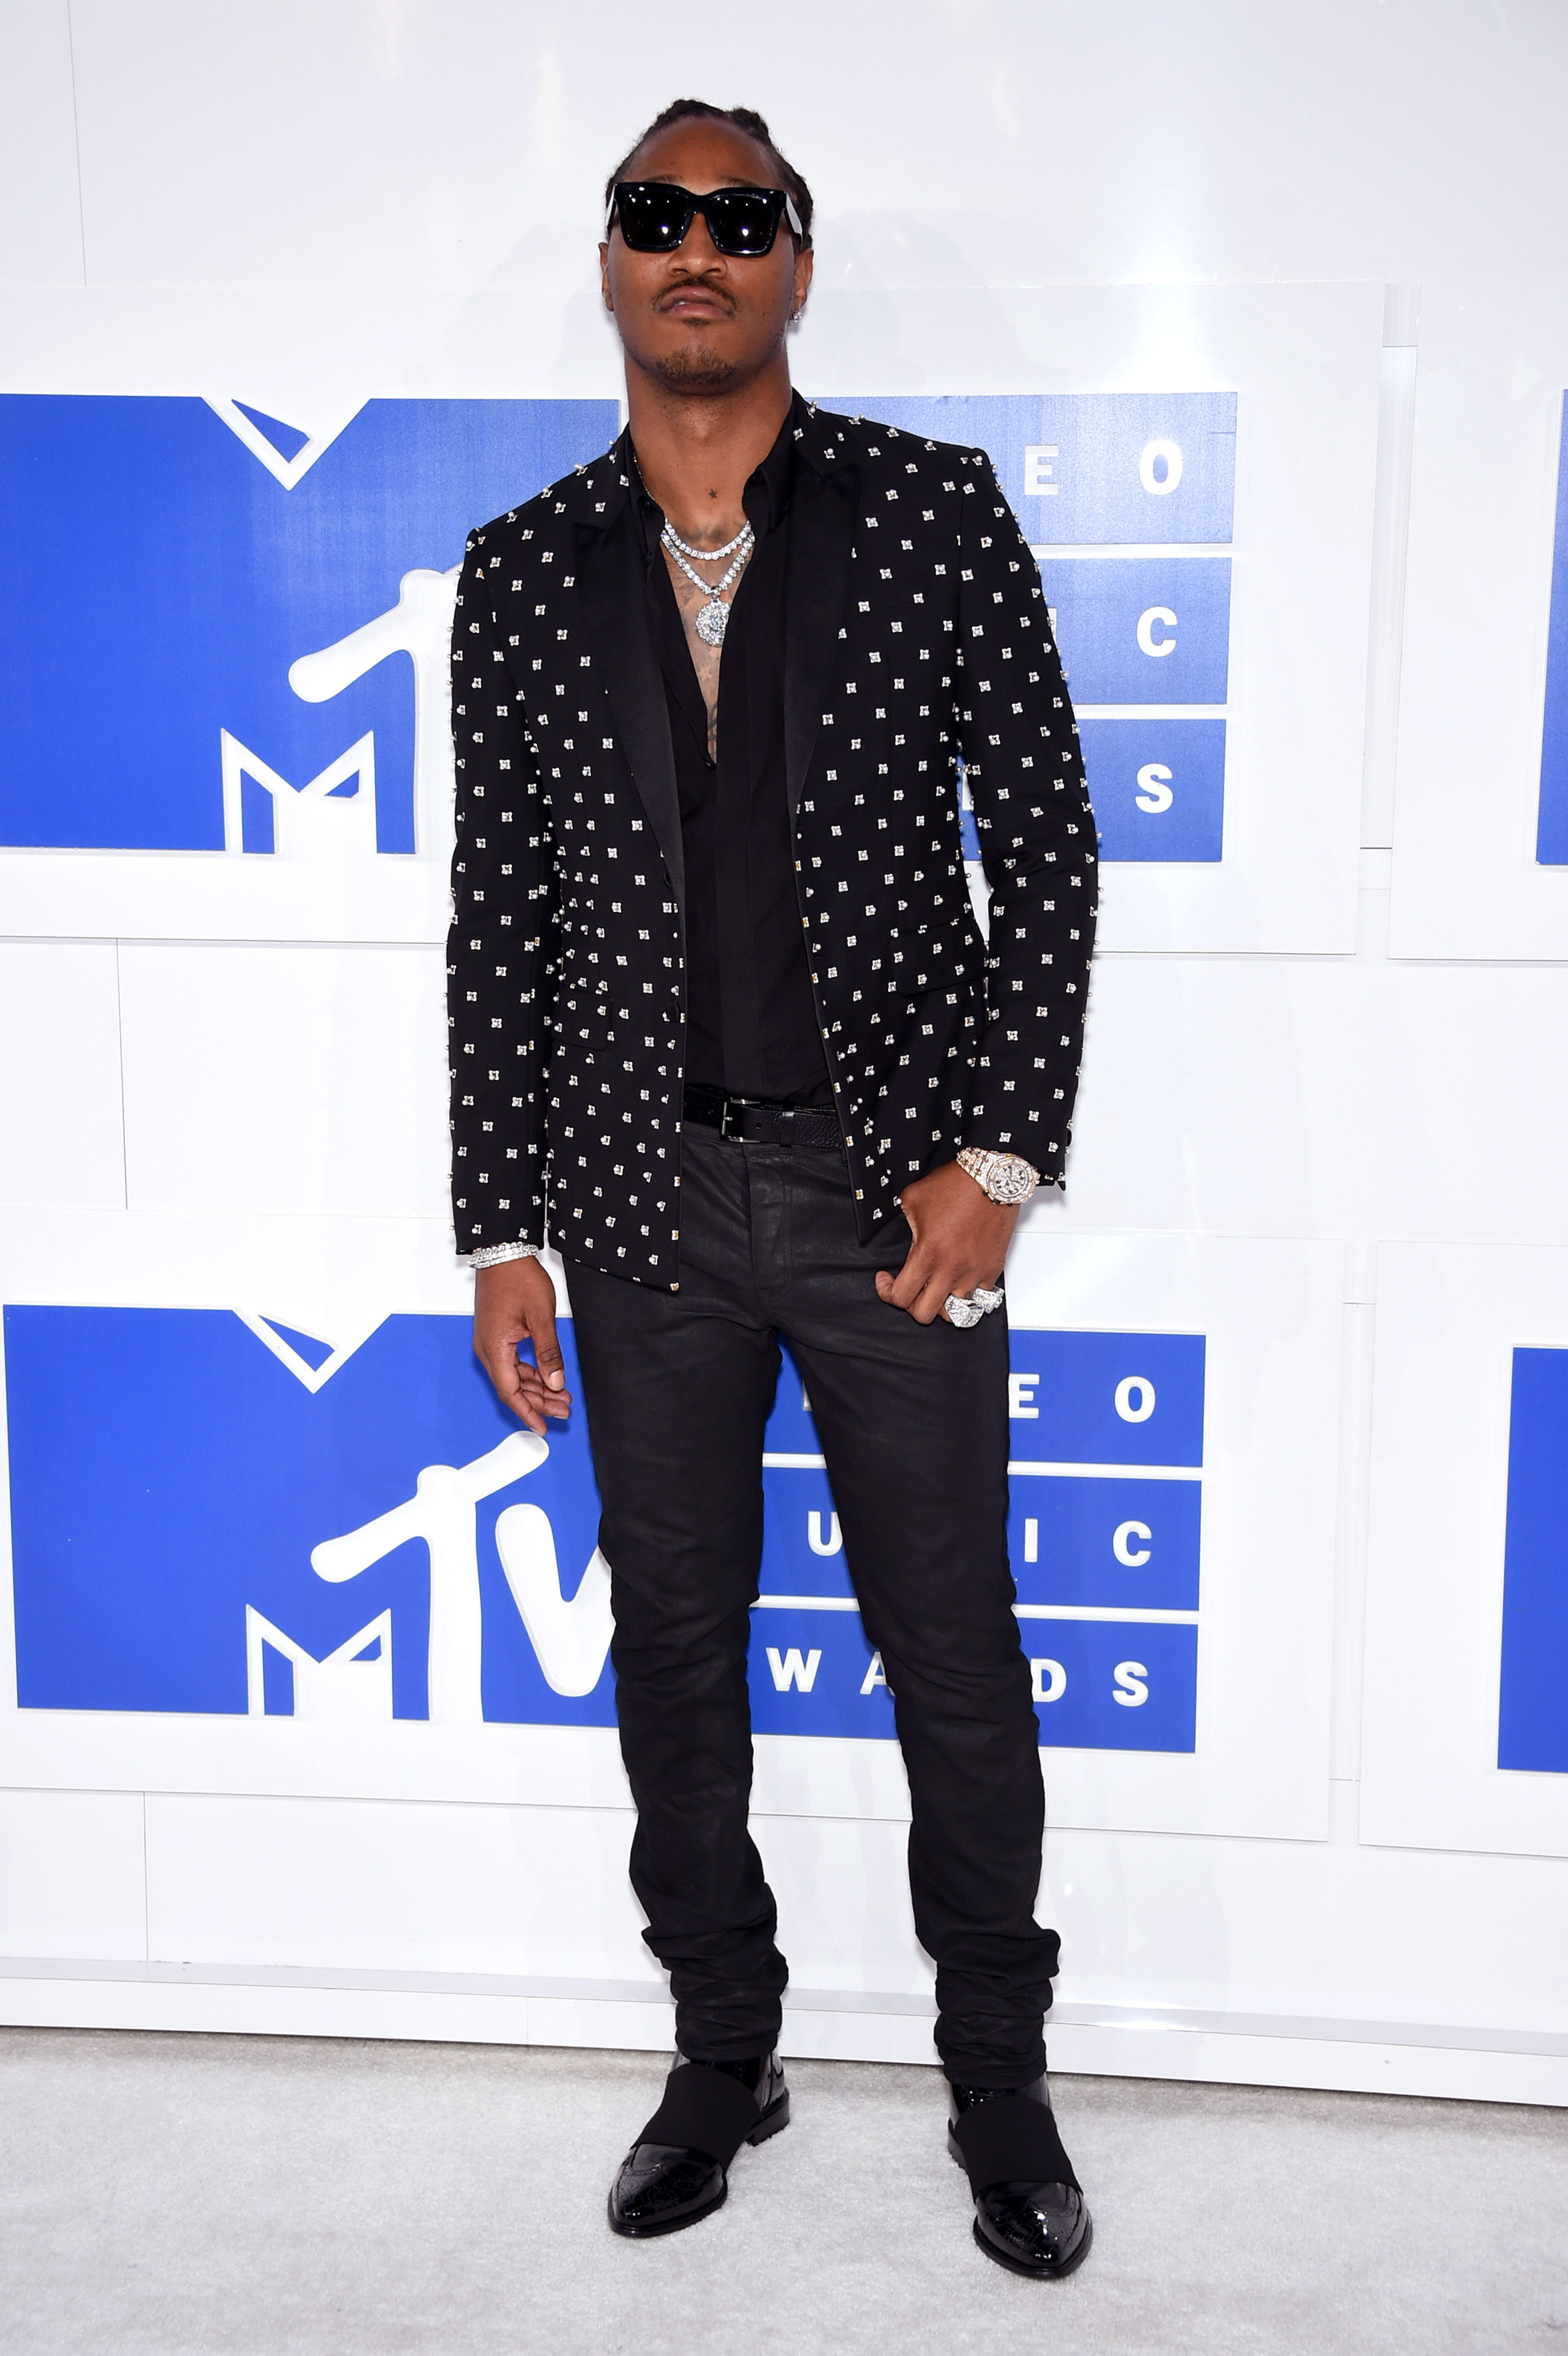 Future attends the 2016 MTV Video Music Awards at Madison Square Garden on Aug. 28, 2016 in New York City.